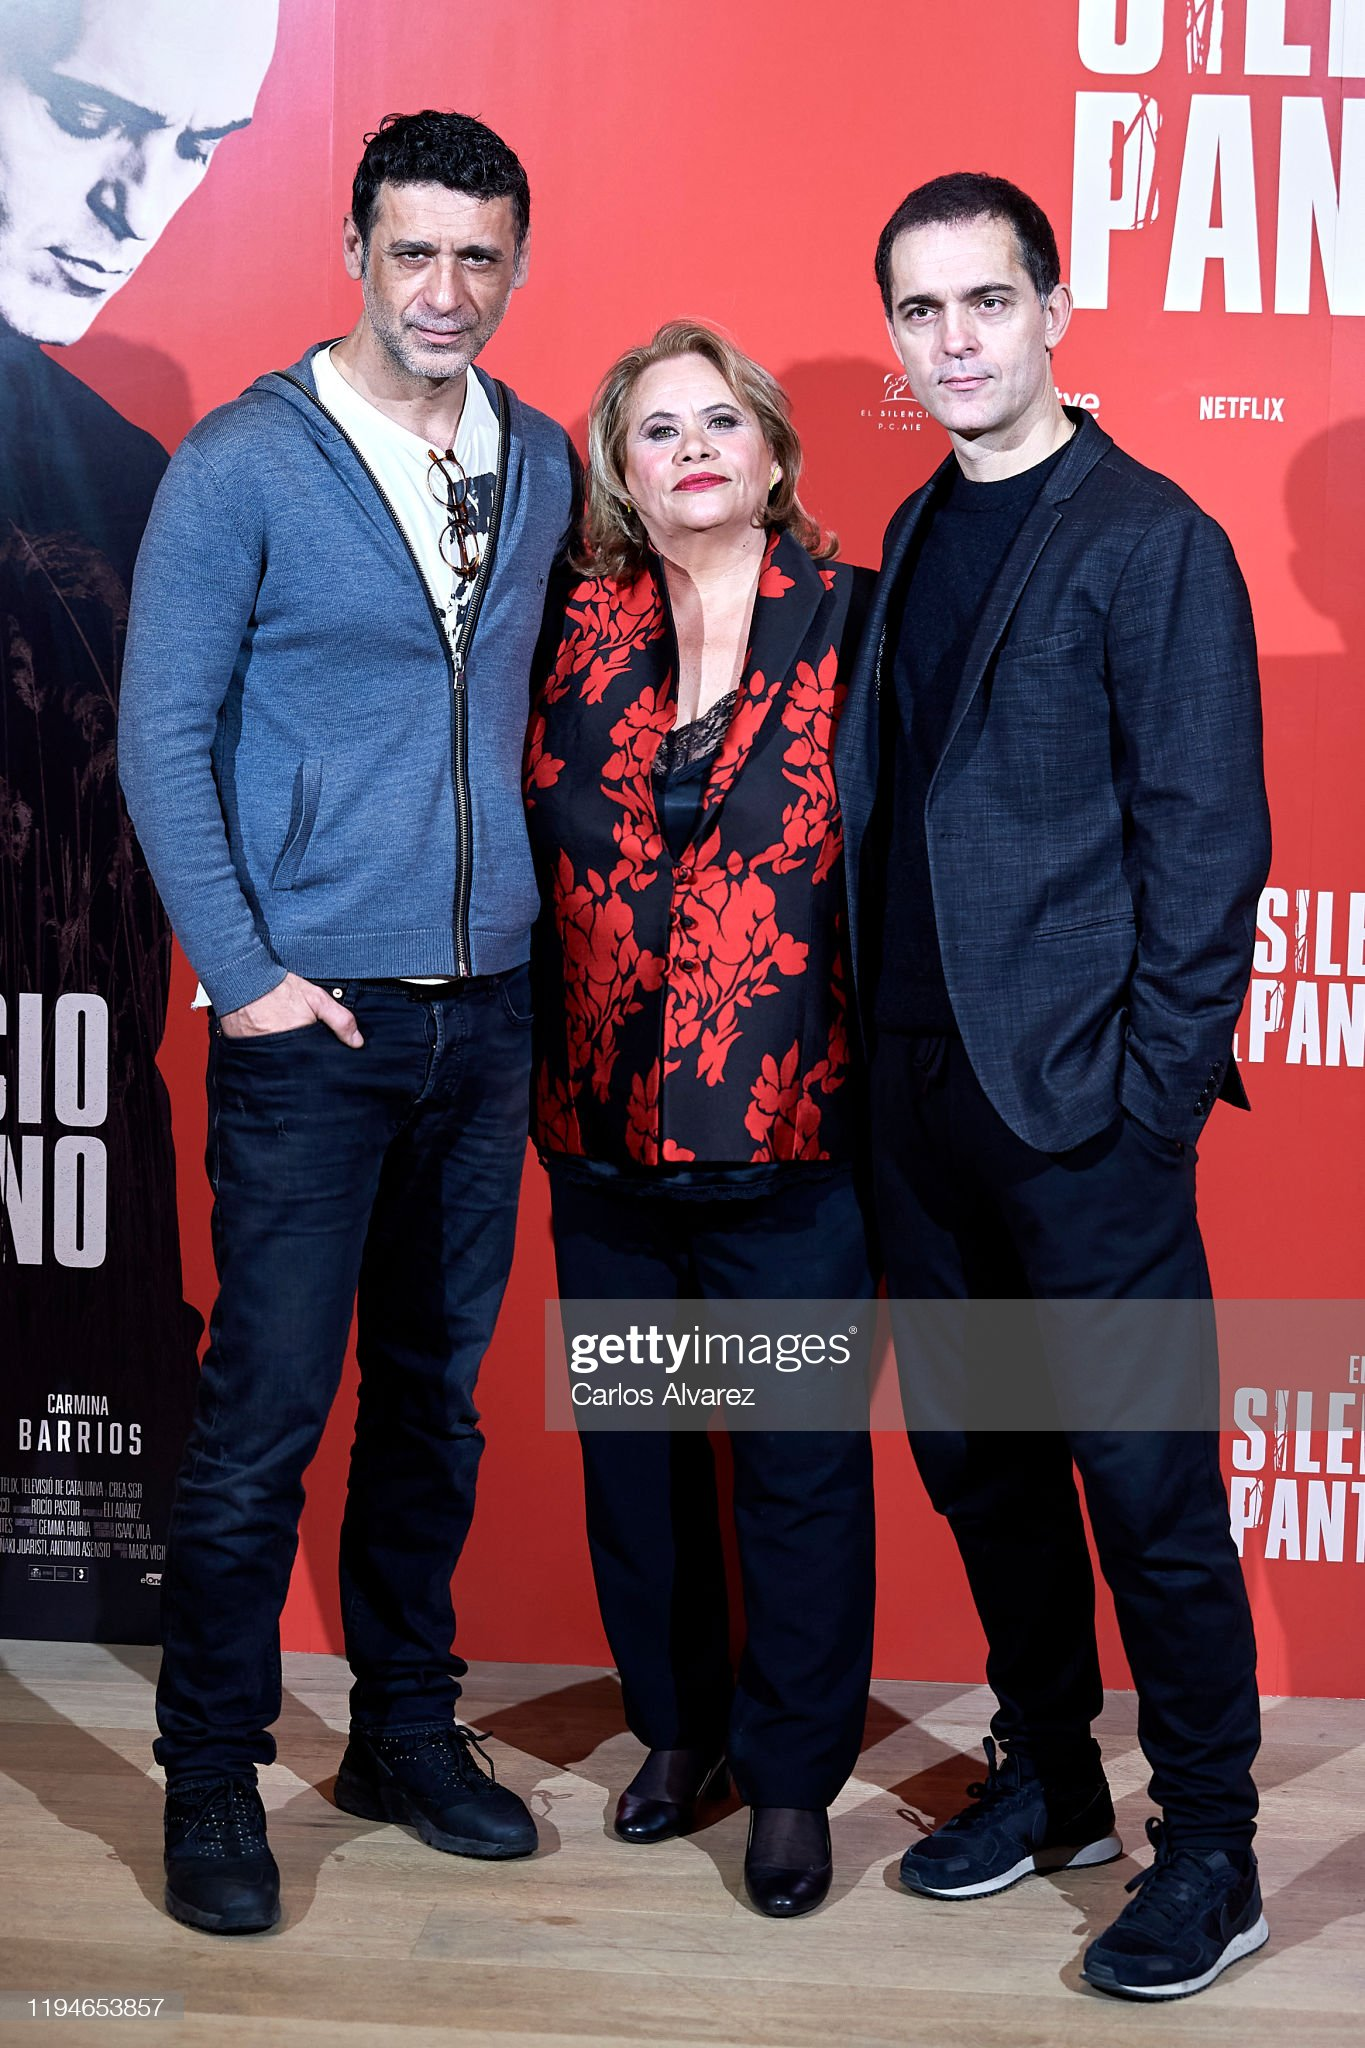 ¿Cuánto mide Pedro Alonso? - Altura - Real height Actors-nacho-fresneda-carmina-barrios-and-pedro-alonso-attend-el-del-picture-id1194653857?s=2048x2048